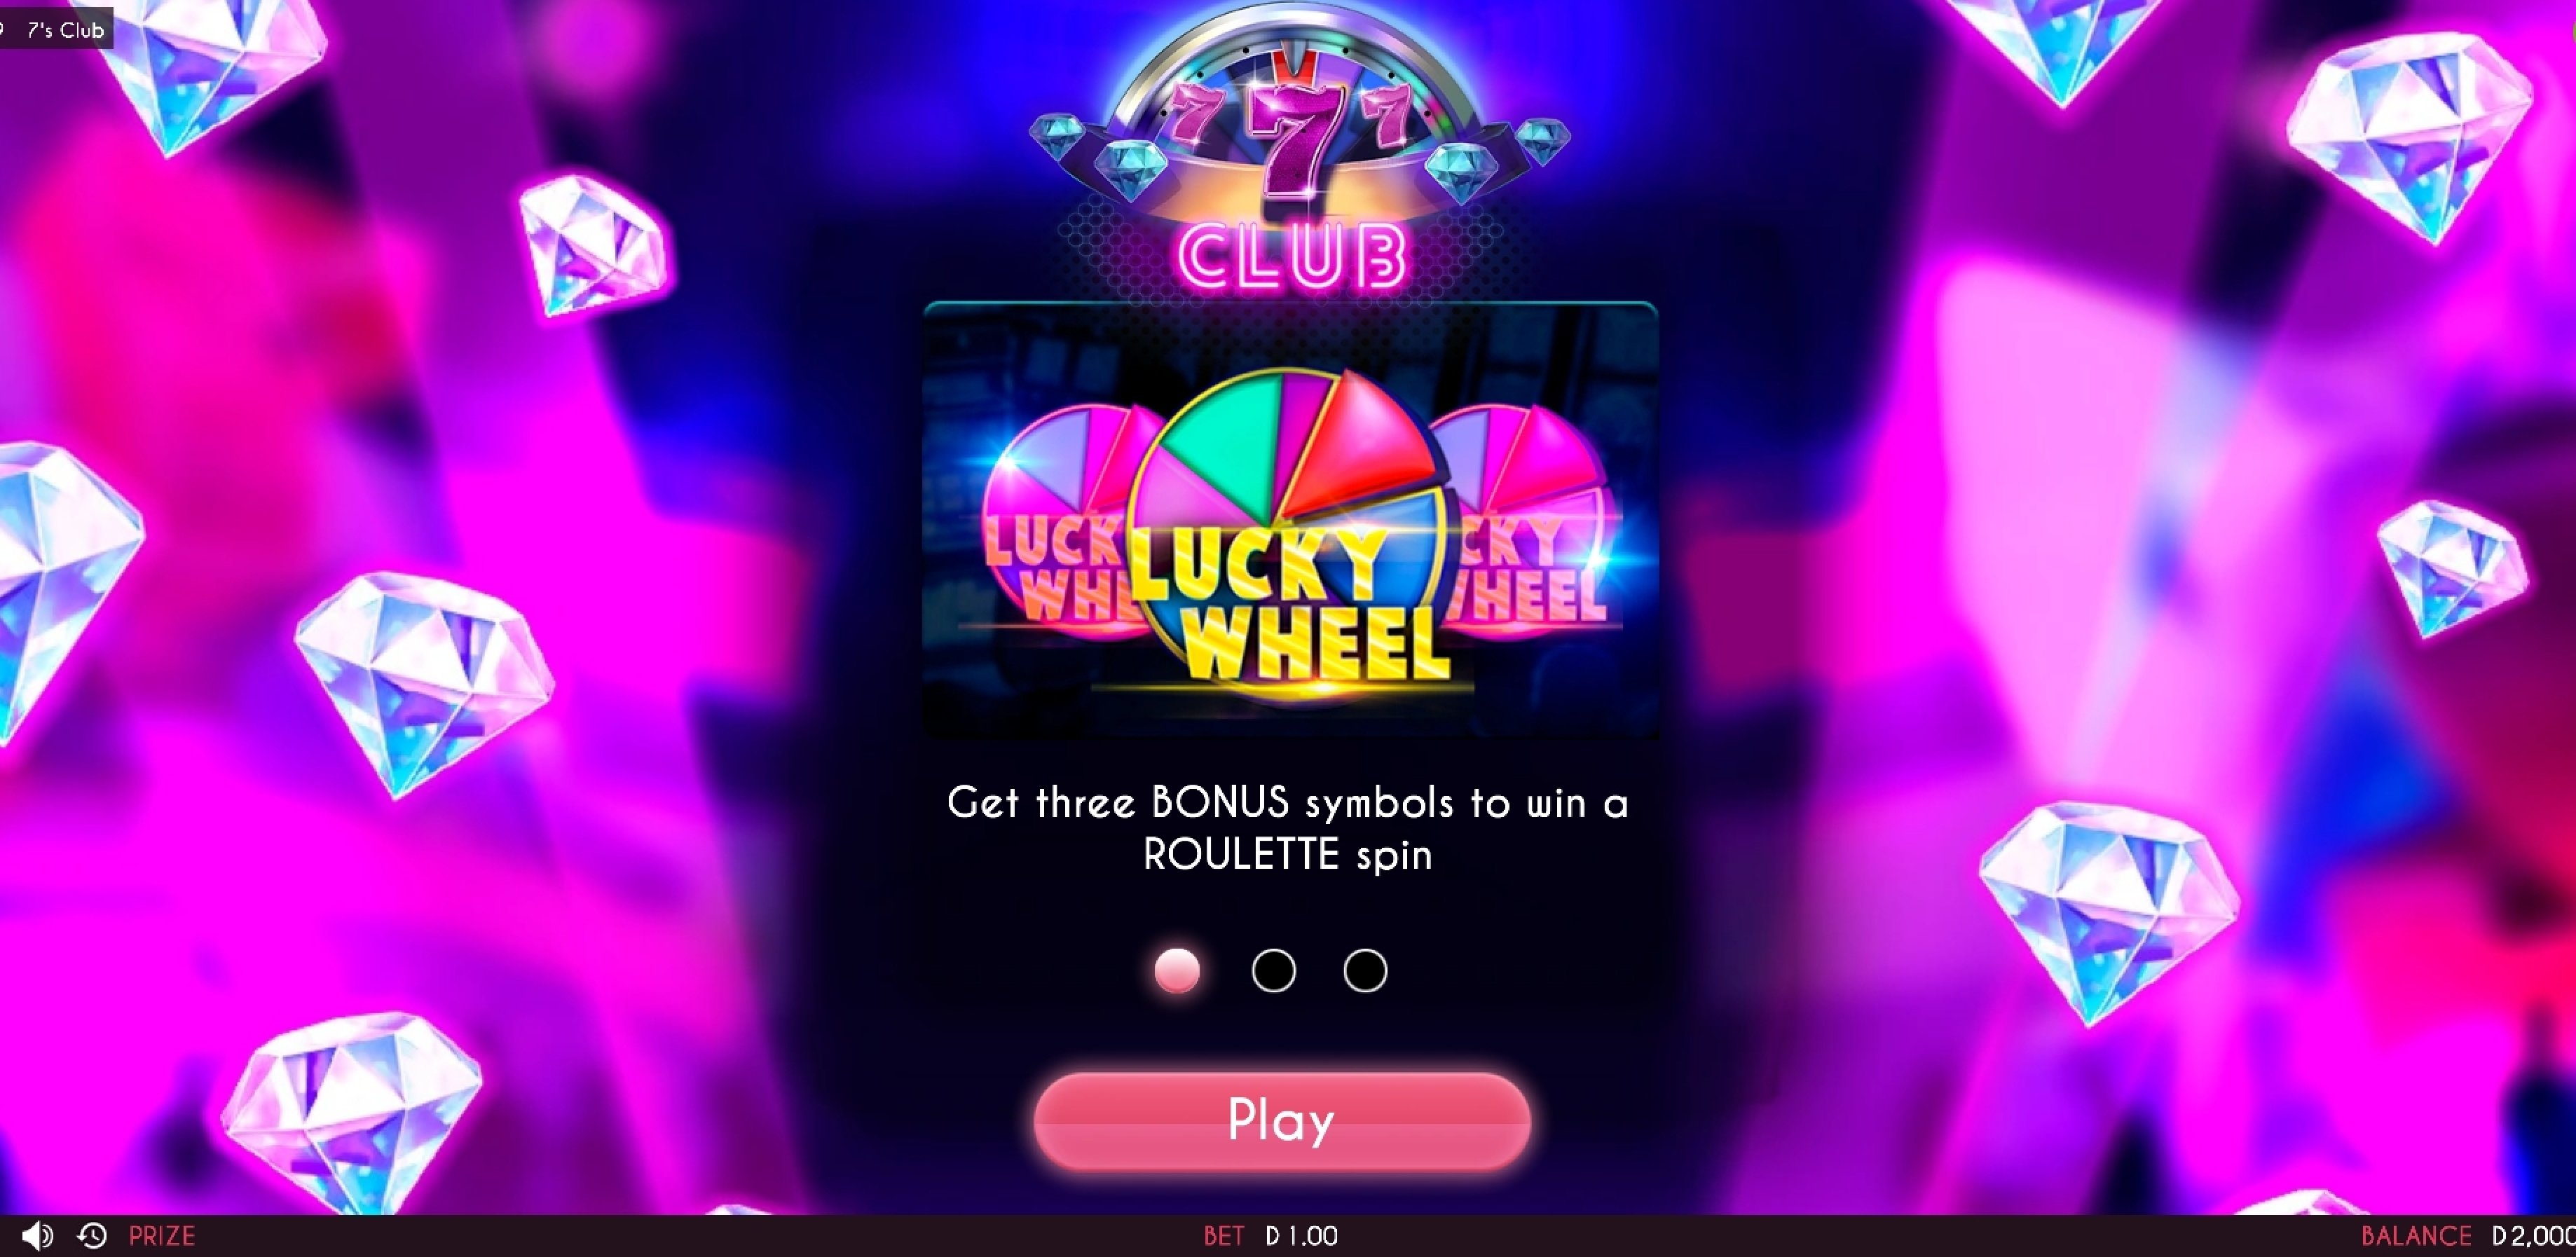 Ace reveal casino online games